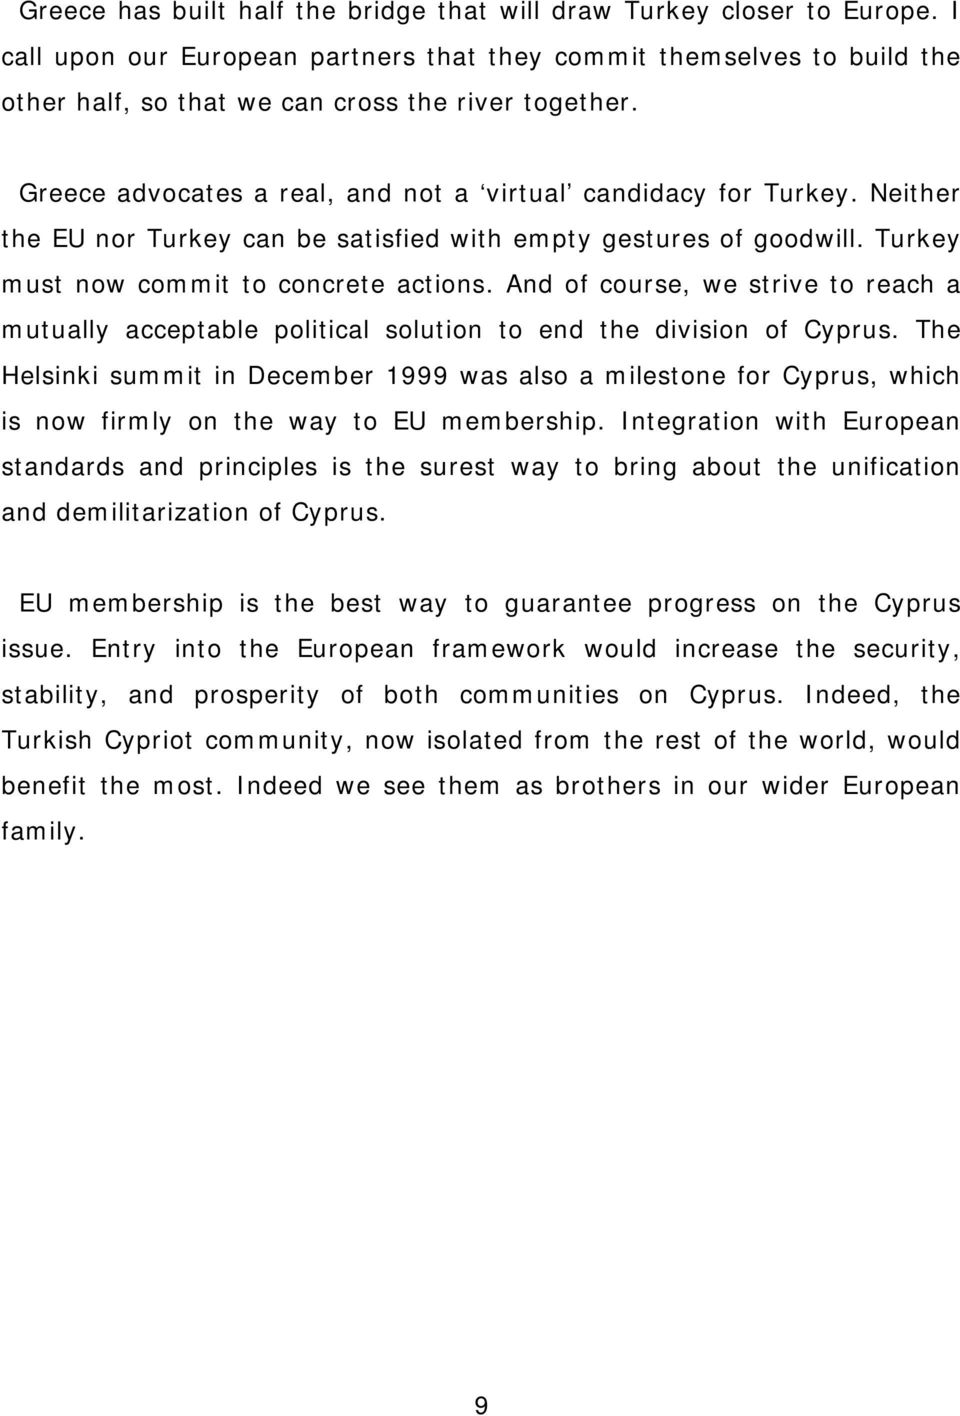 And of course, we strive to reach a mutually acceptable political solution to end the division of Cyprus.